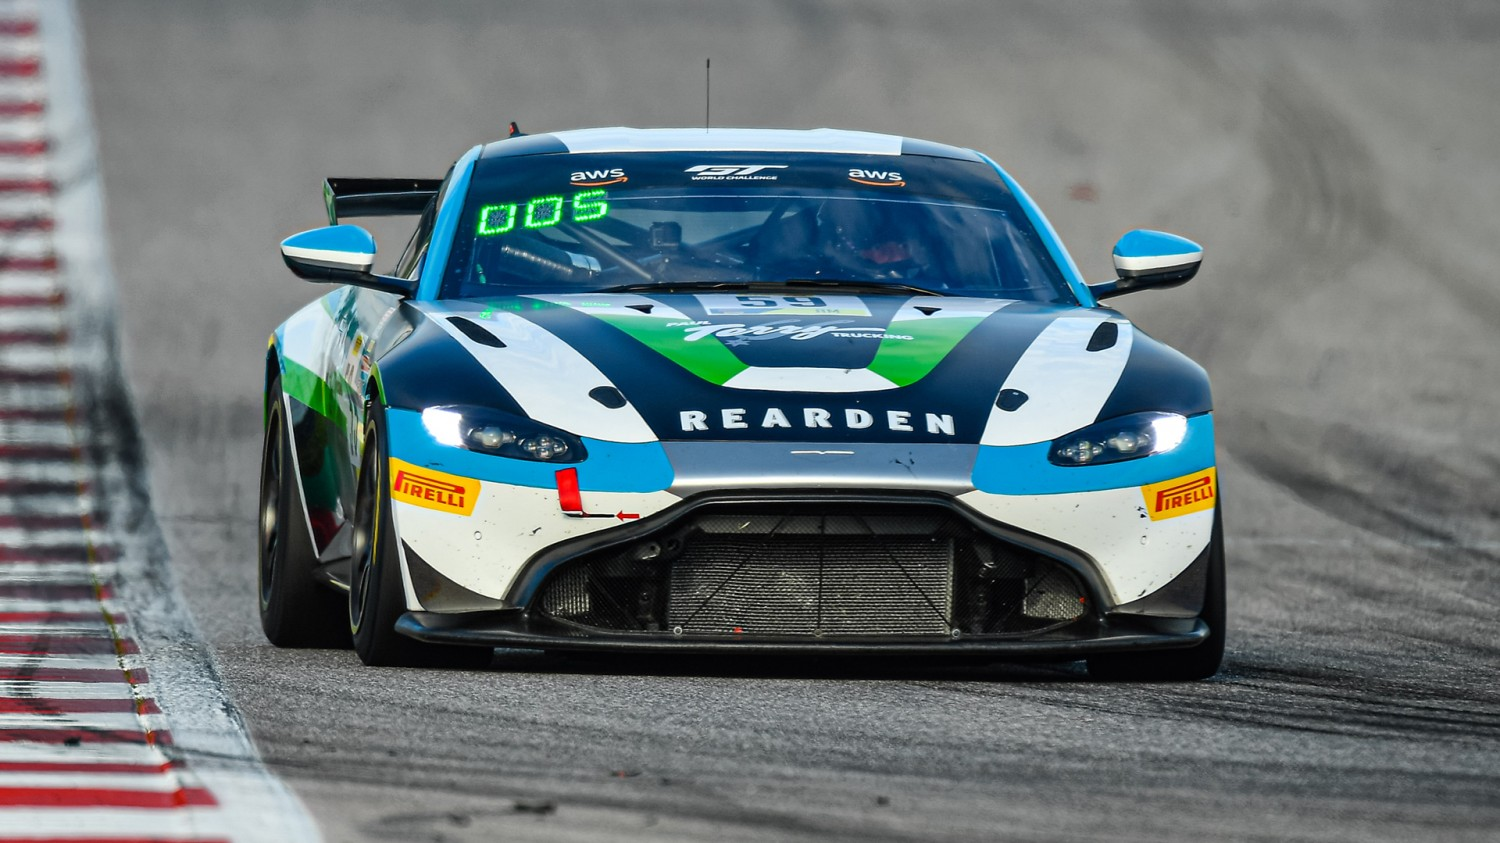 Paul Terry, Rearden Racing Score 1st and 2nd in Pirelli GT4 America AM Sprint Races